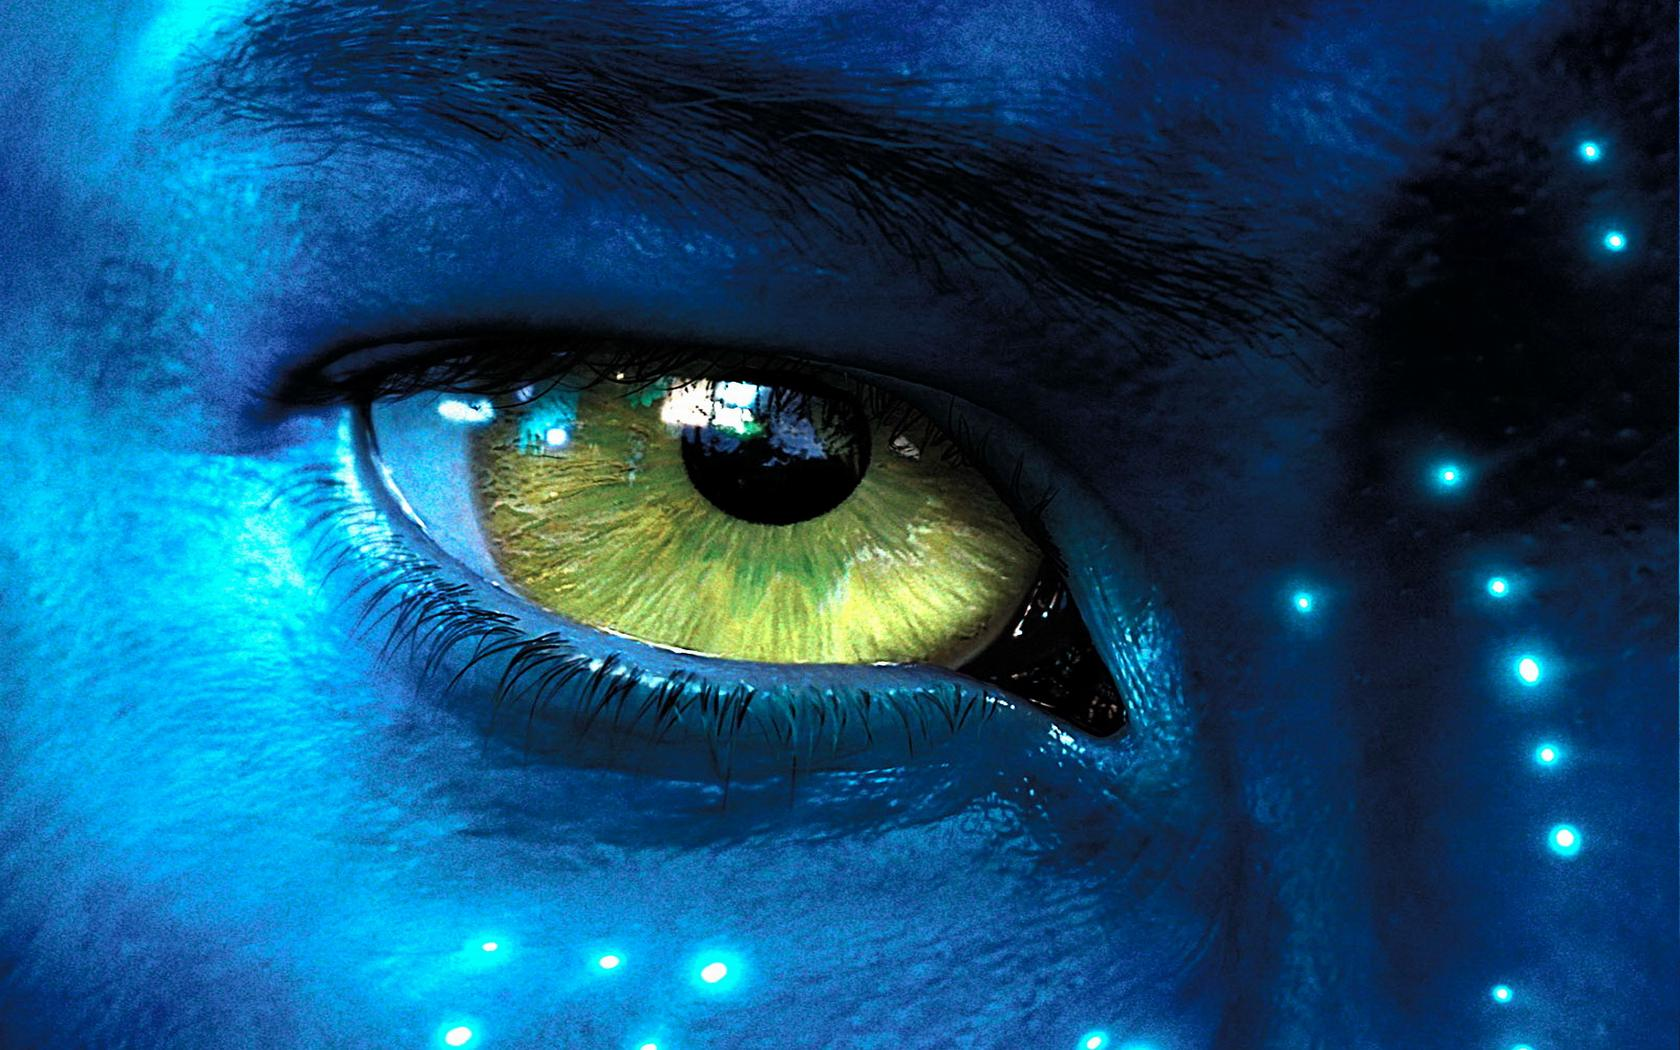 5 Things Avatar Taught Me About Self-Improvement